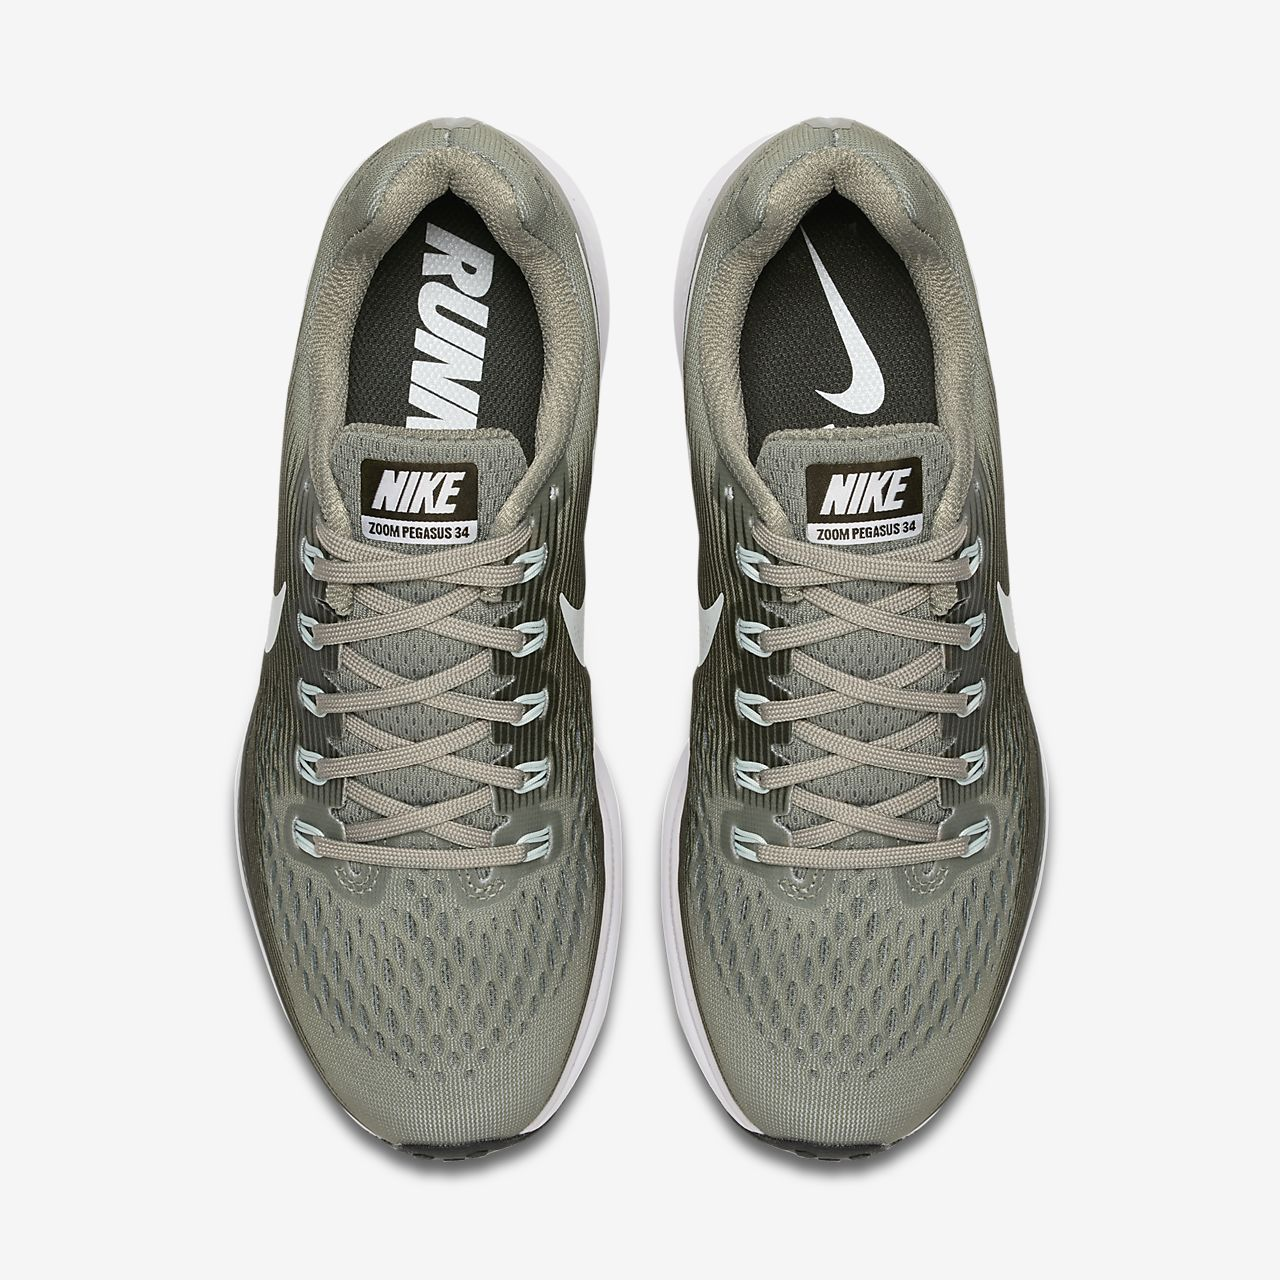 quality design 5d032 82298 Nike Air Zoom Pegasus 34 Women s Running Shoe- Dark  Stucco Sequoia Black Barely Grey